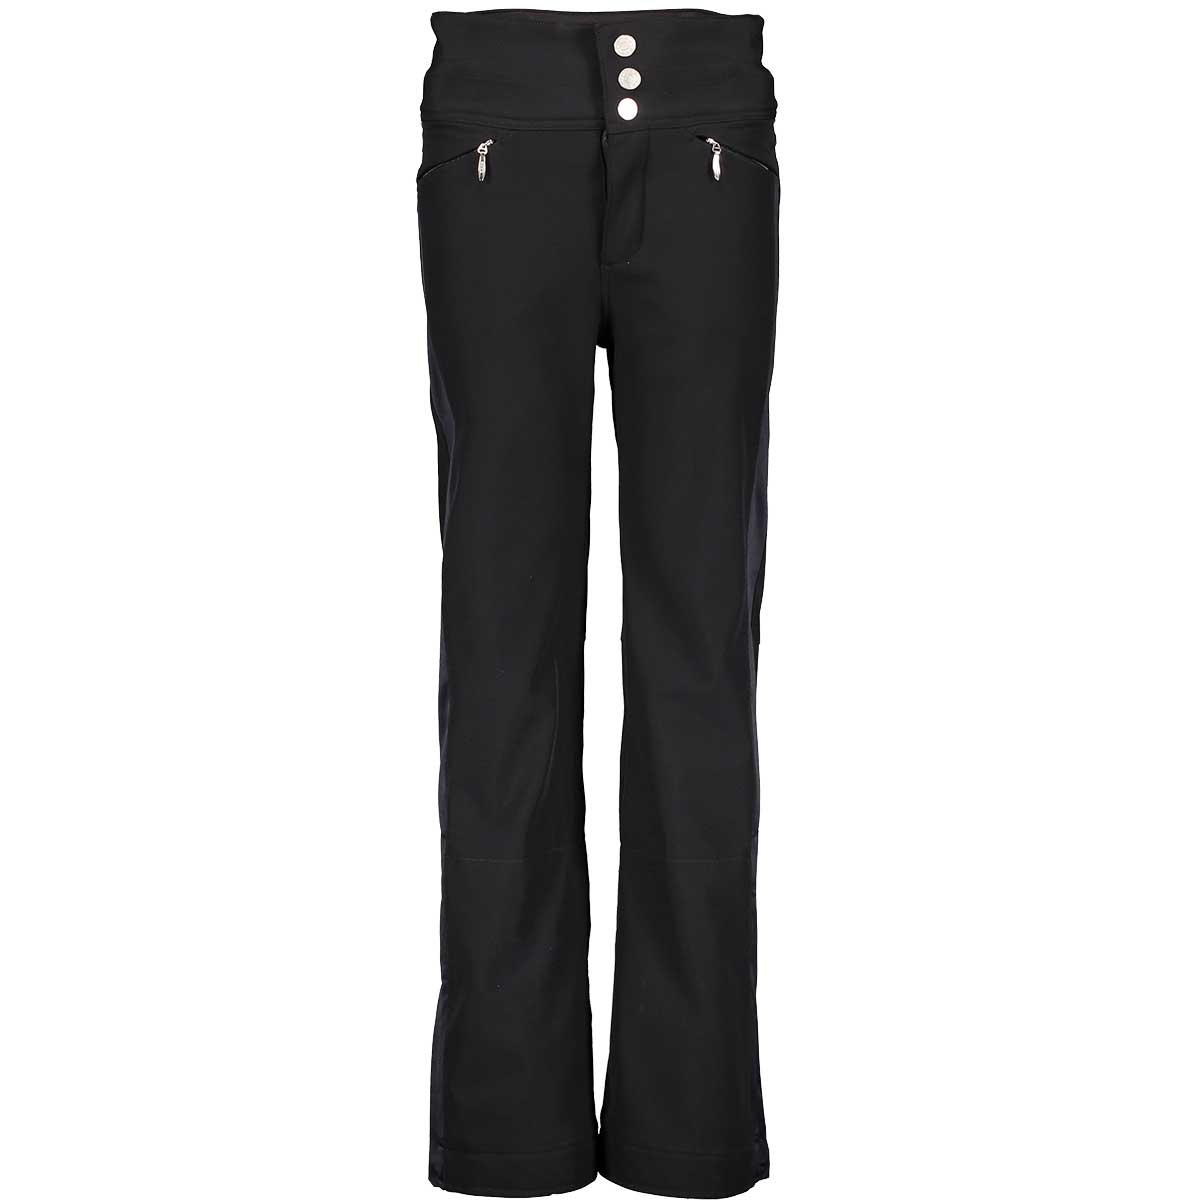 Obermeyer Teen Girls' Jolie Softshell Pant in Black front view